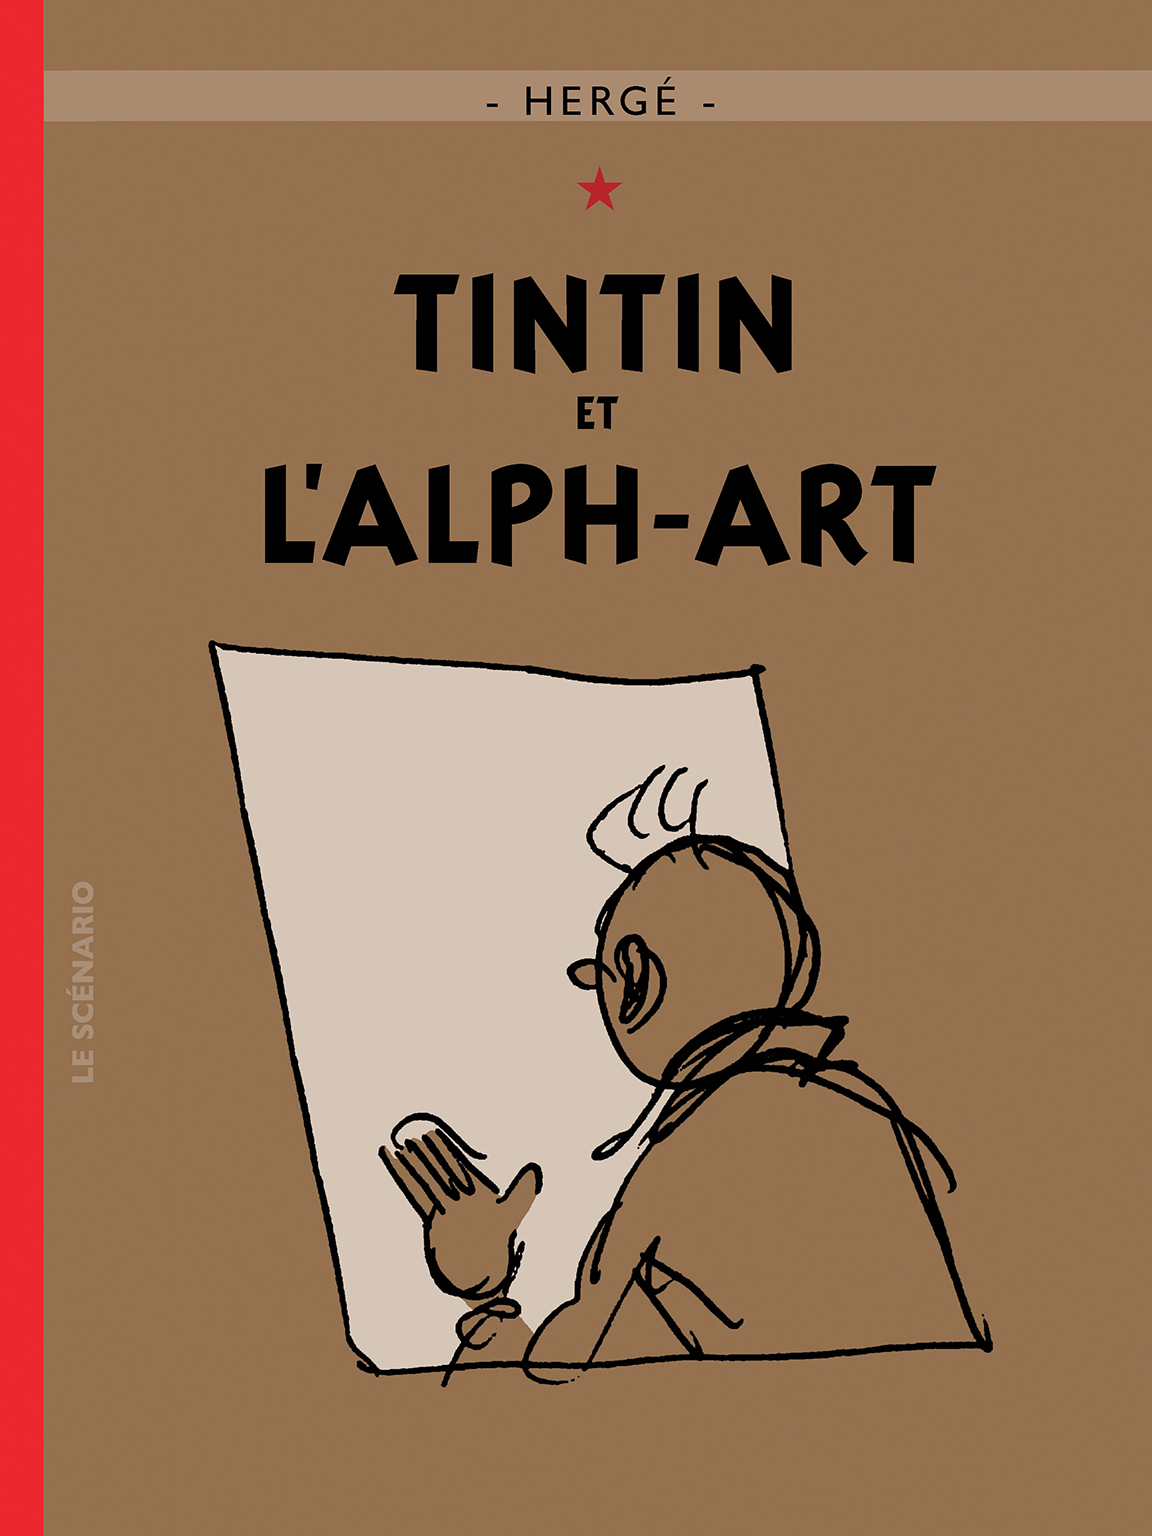 TINTIN and Alph-Art Hergé RG tintin.com